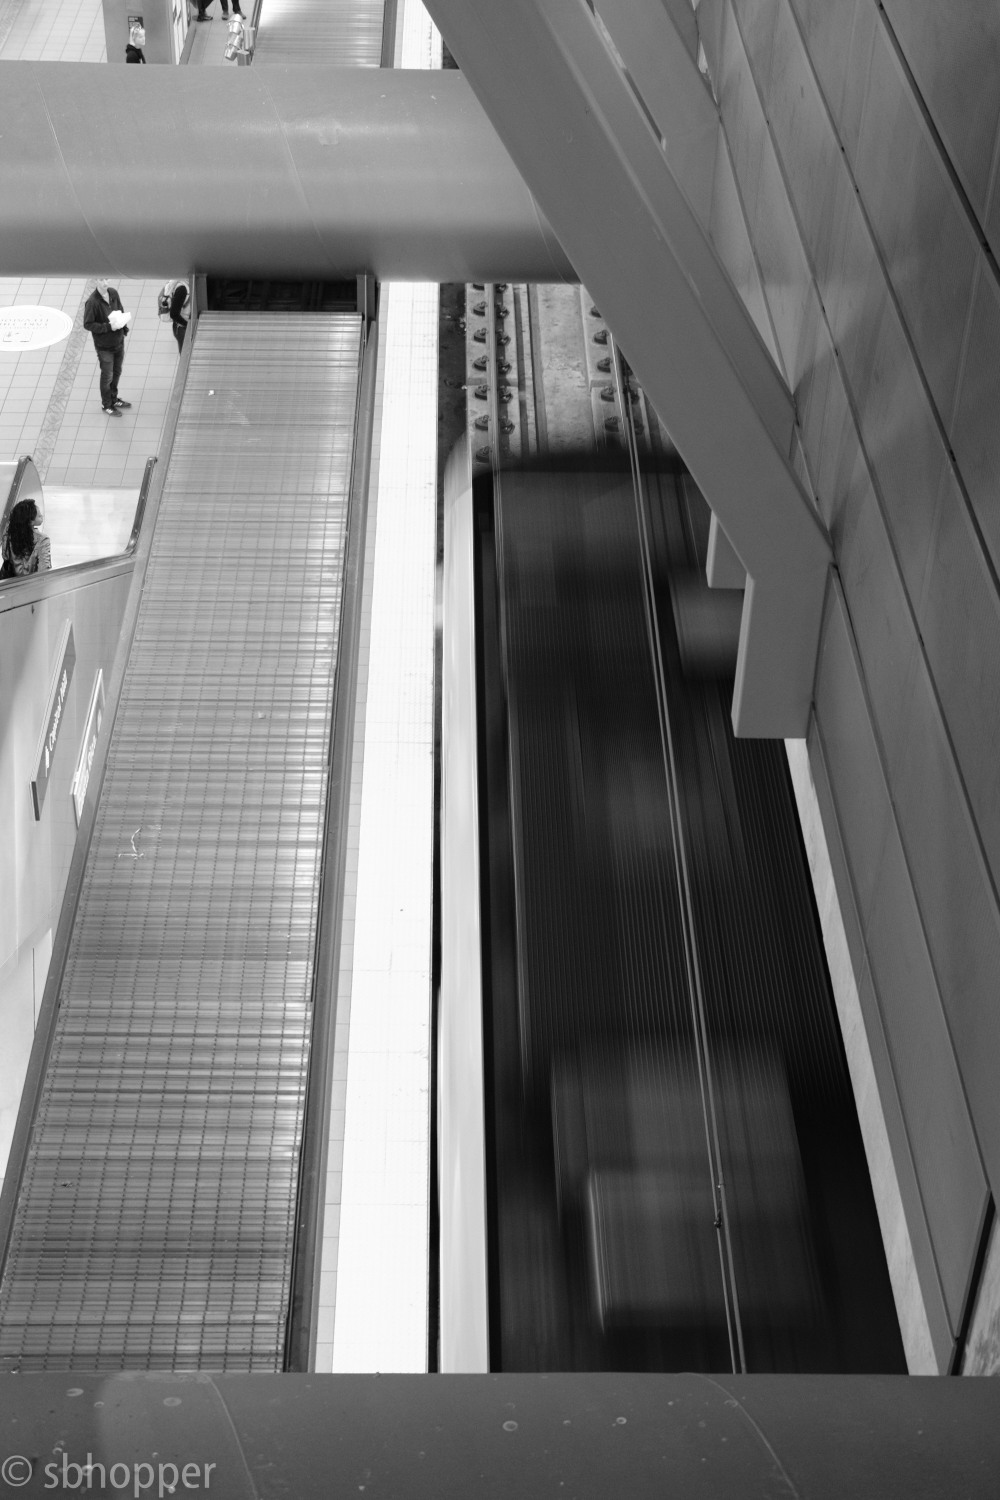 Capitol Hill Station (1 of 1)